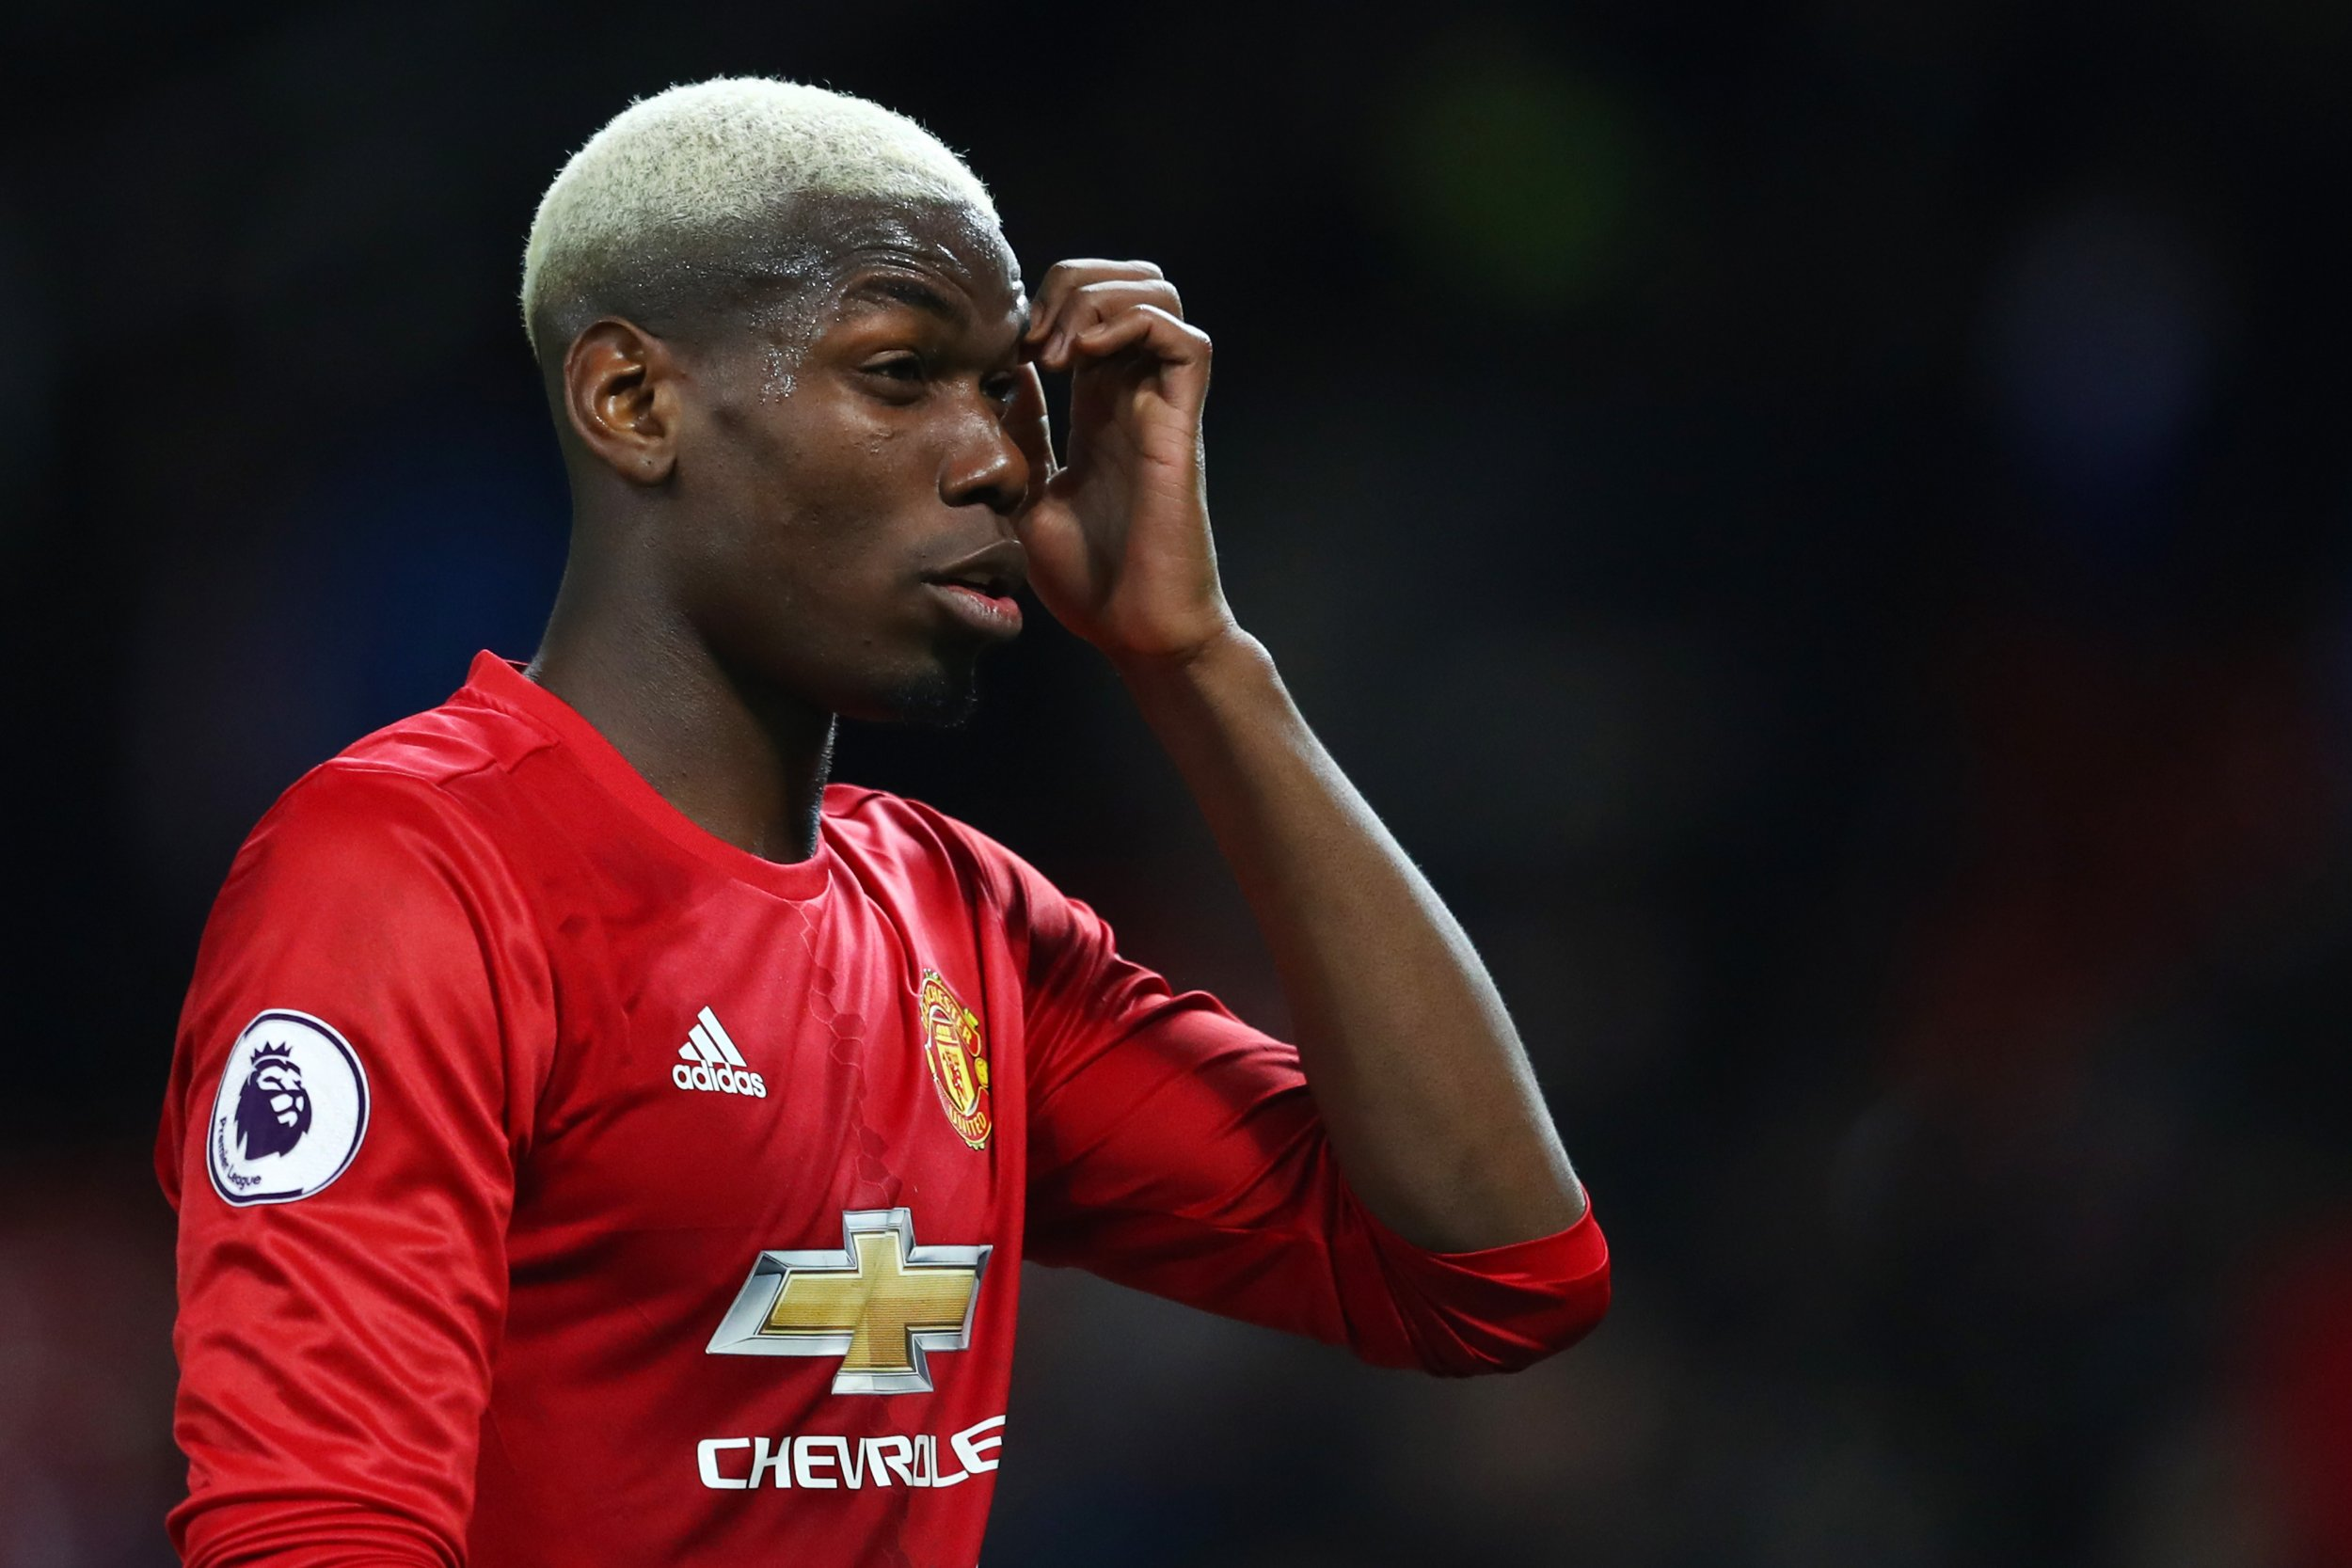 Paul Pogba: Manchester United: How Paul Pogba Reacts To Defeat